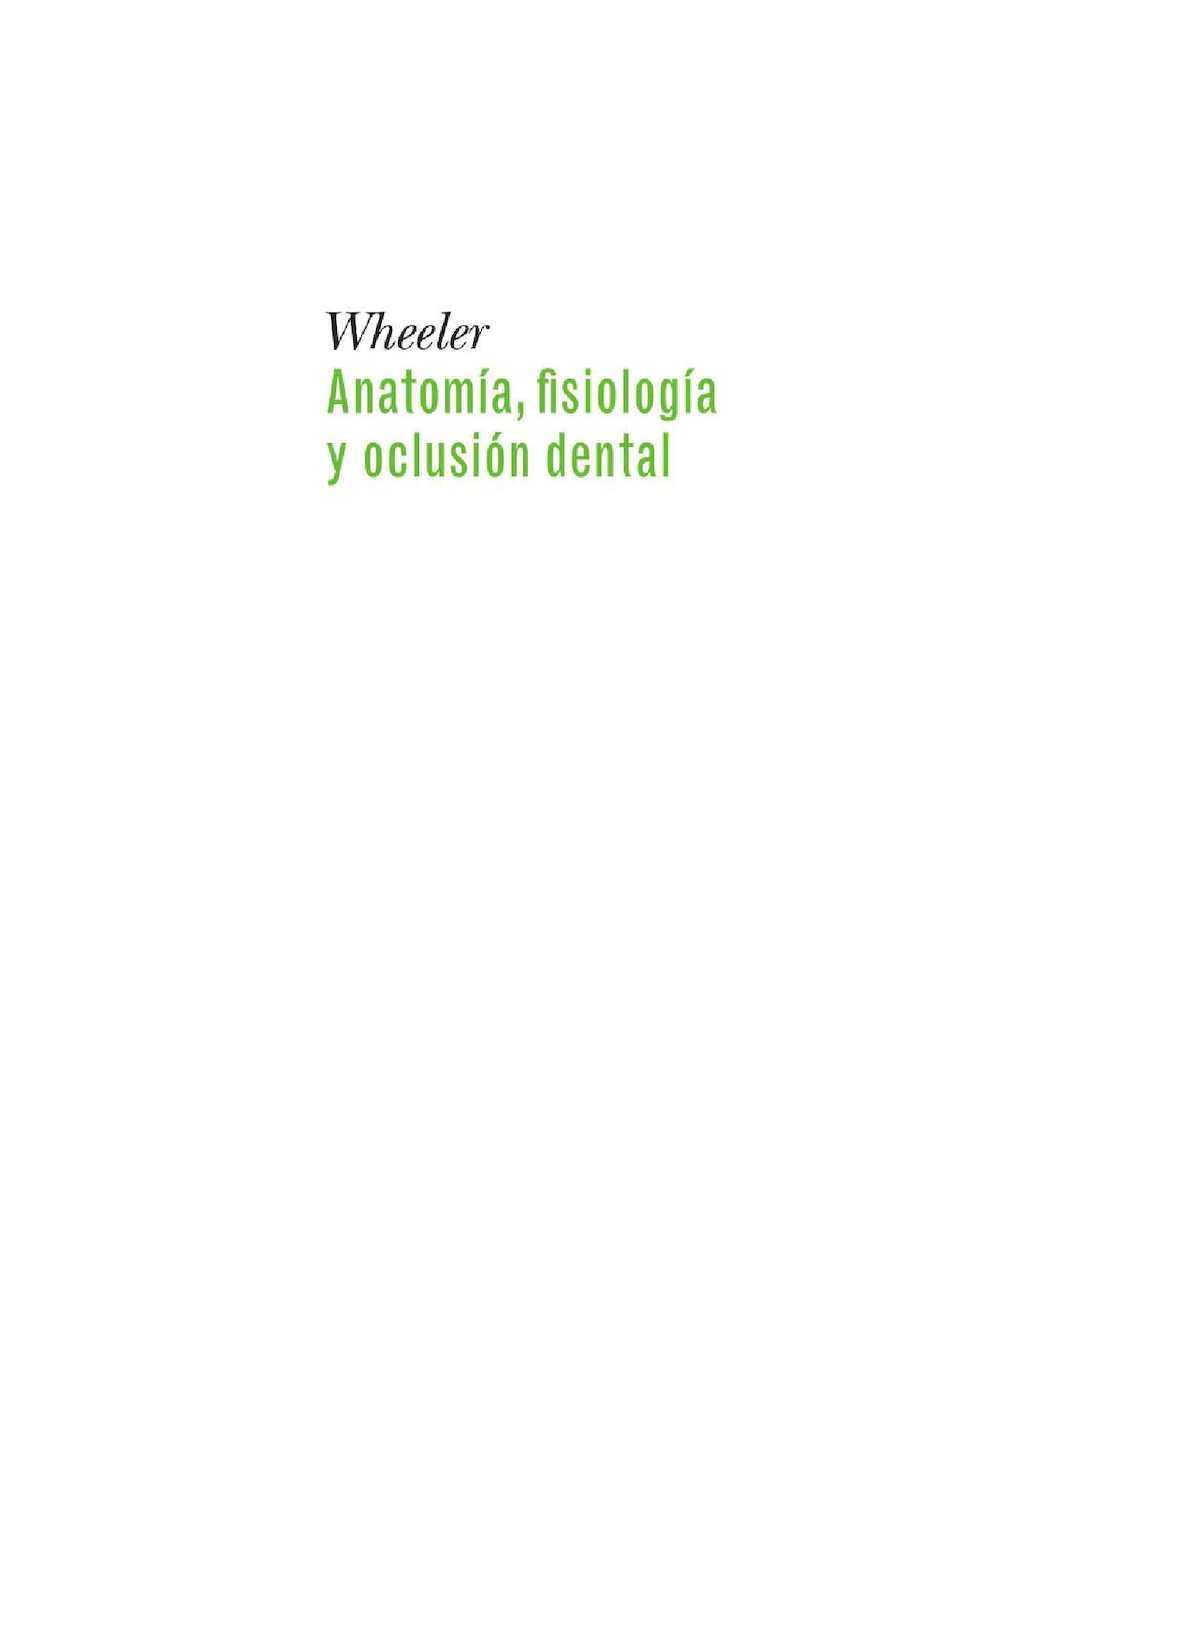 Anatomia Fisiologia Y Oclusion Dental - CALAMEO Downloader